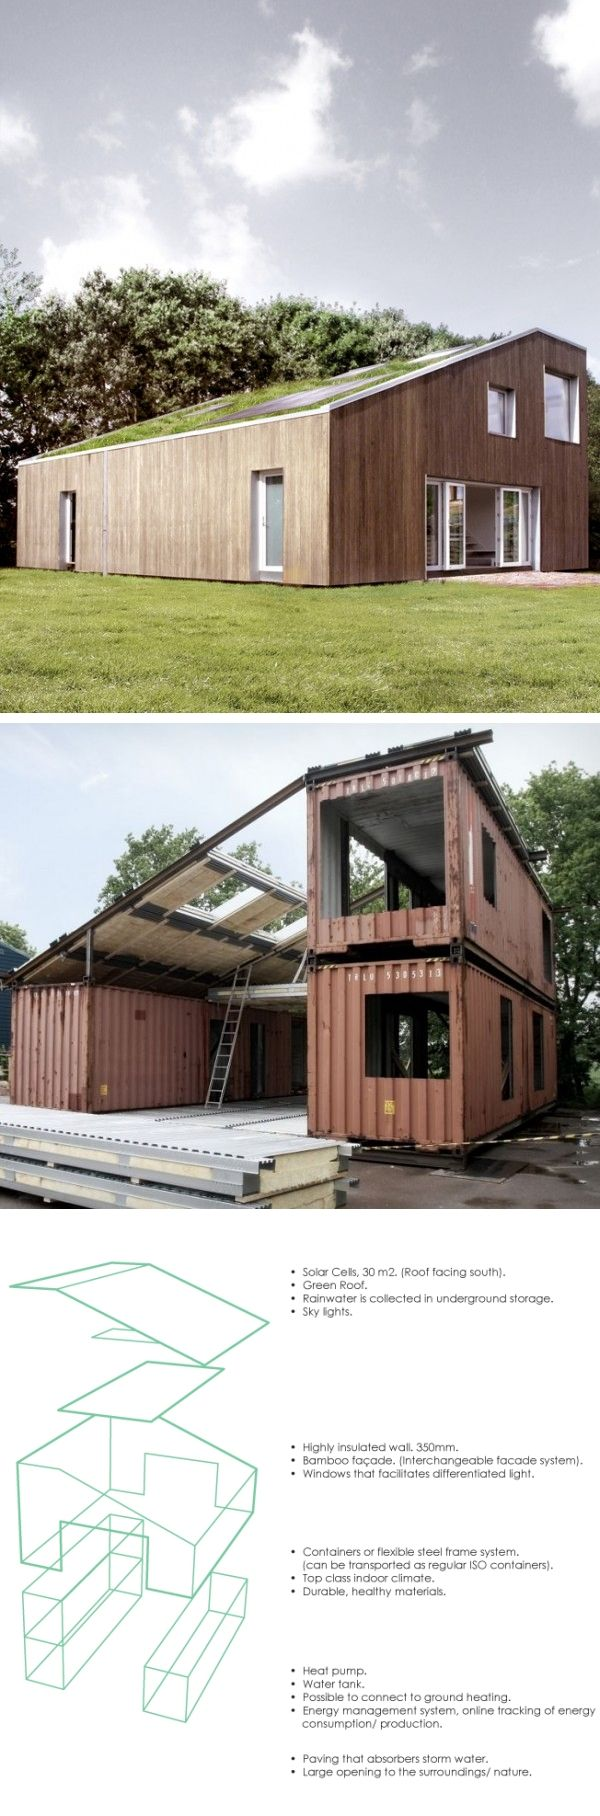 Best Kitchen Gallery: How To Build Your Own Shipping Container Home Farm House Outdoor of Underground Conex Container on rachelxblog.com